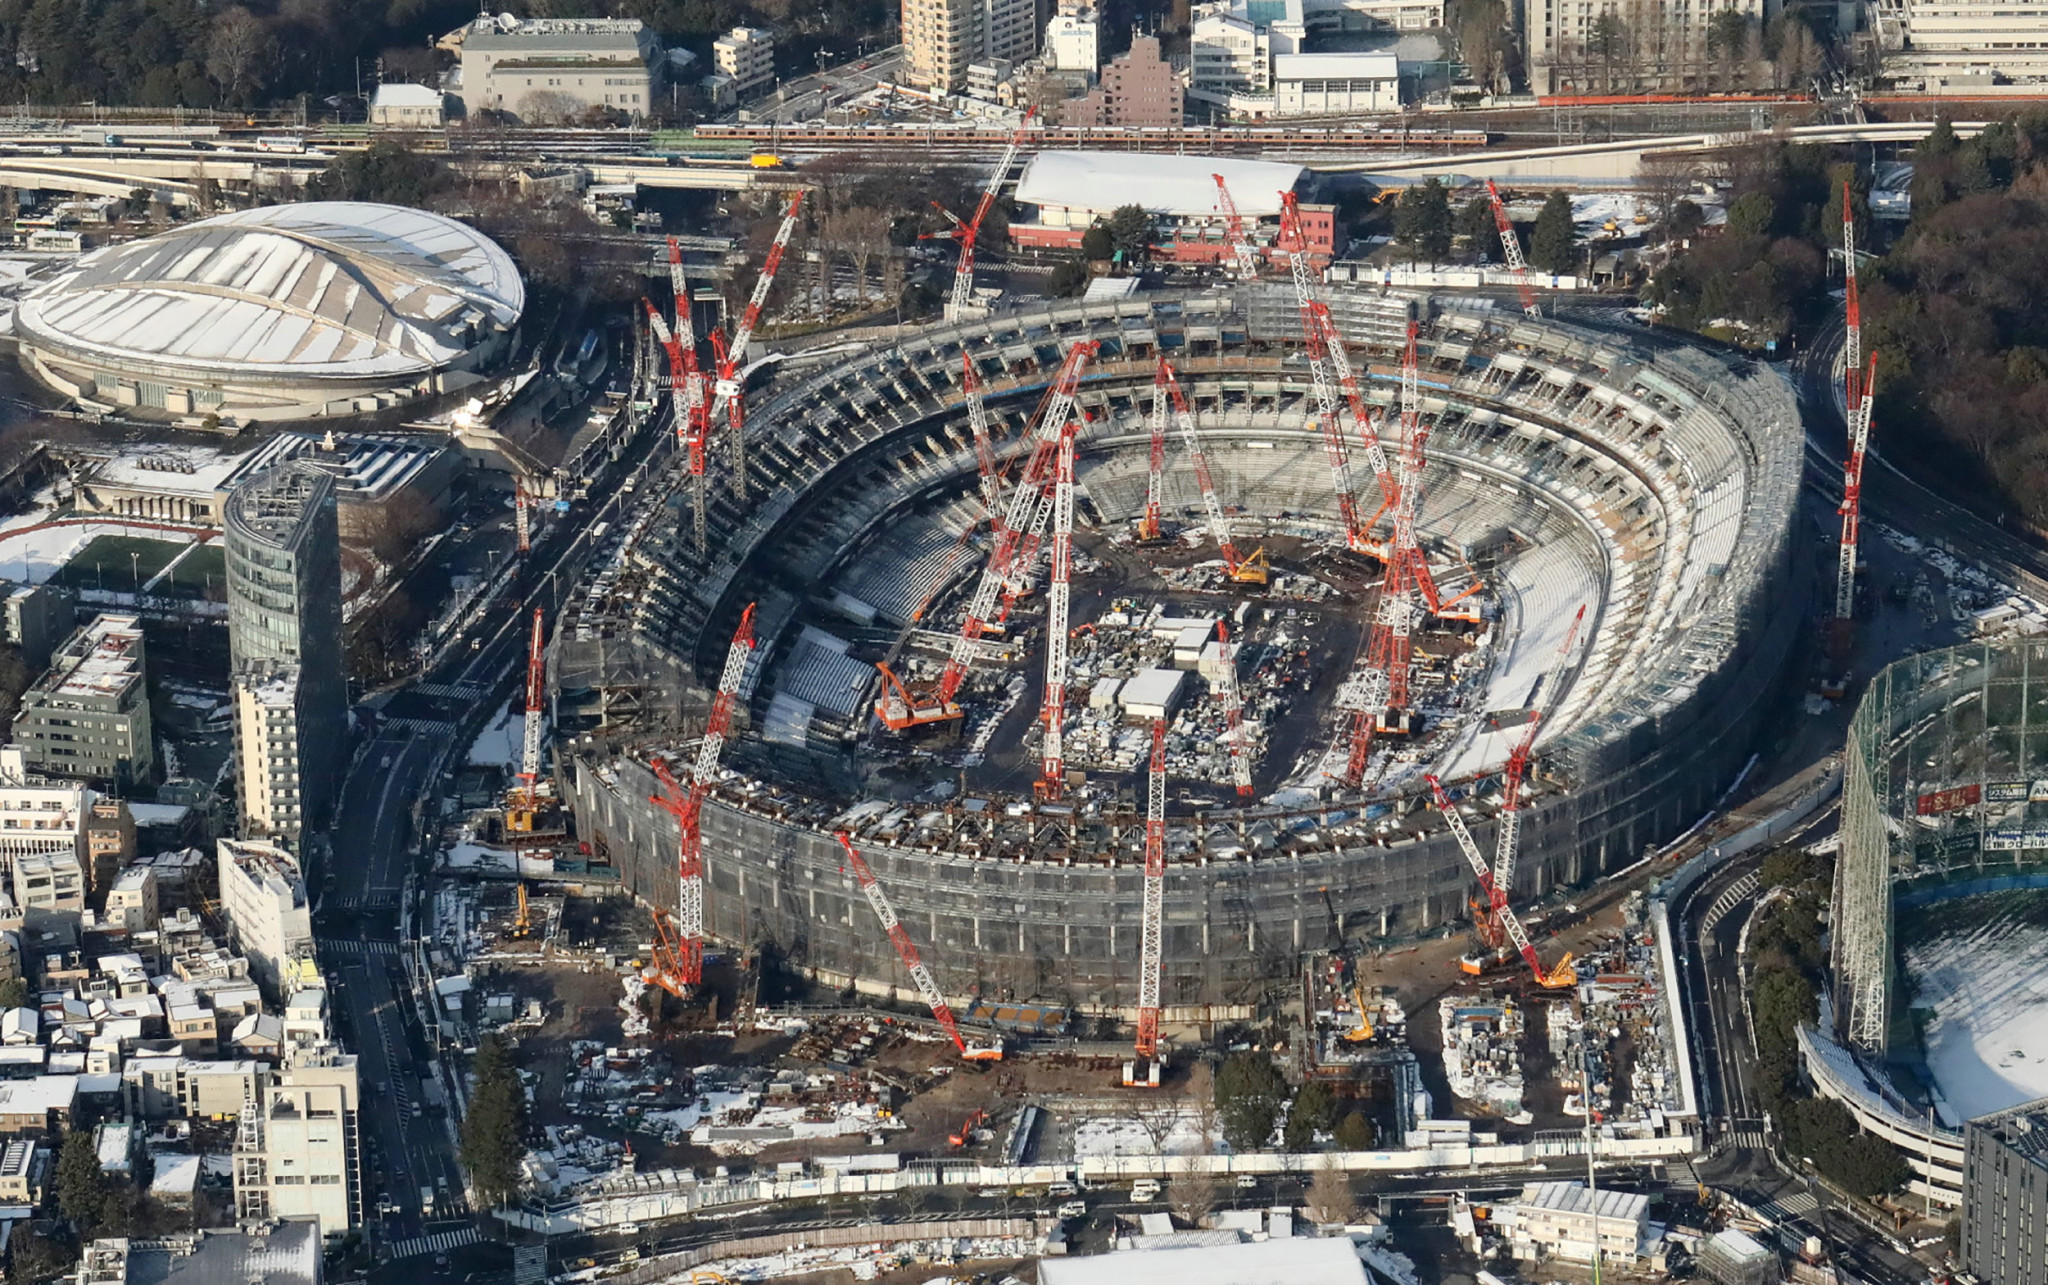 Tokyo's Olympic Stadium, where the Relay will conclude, is currently under construction ©Getty Images